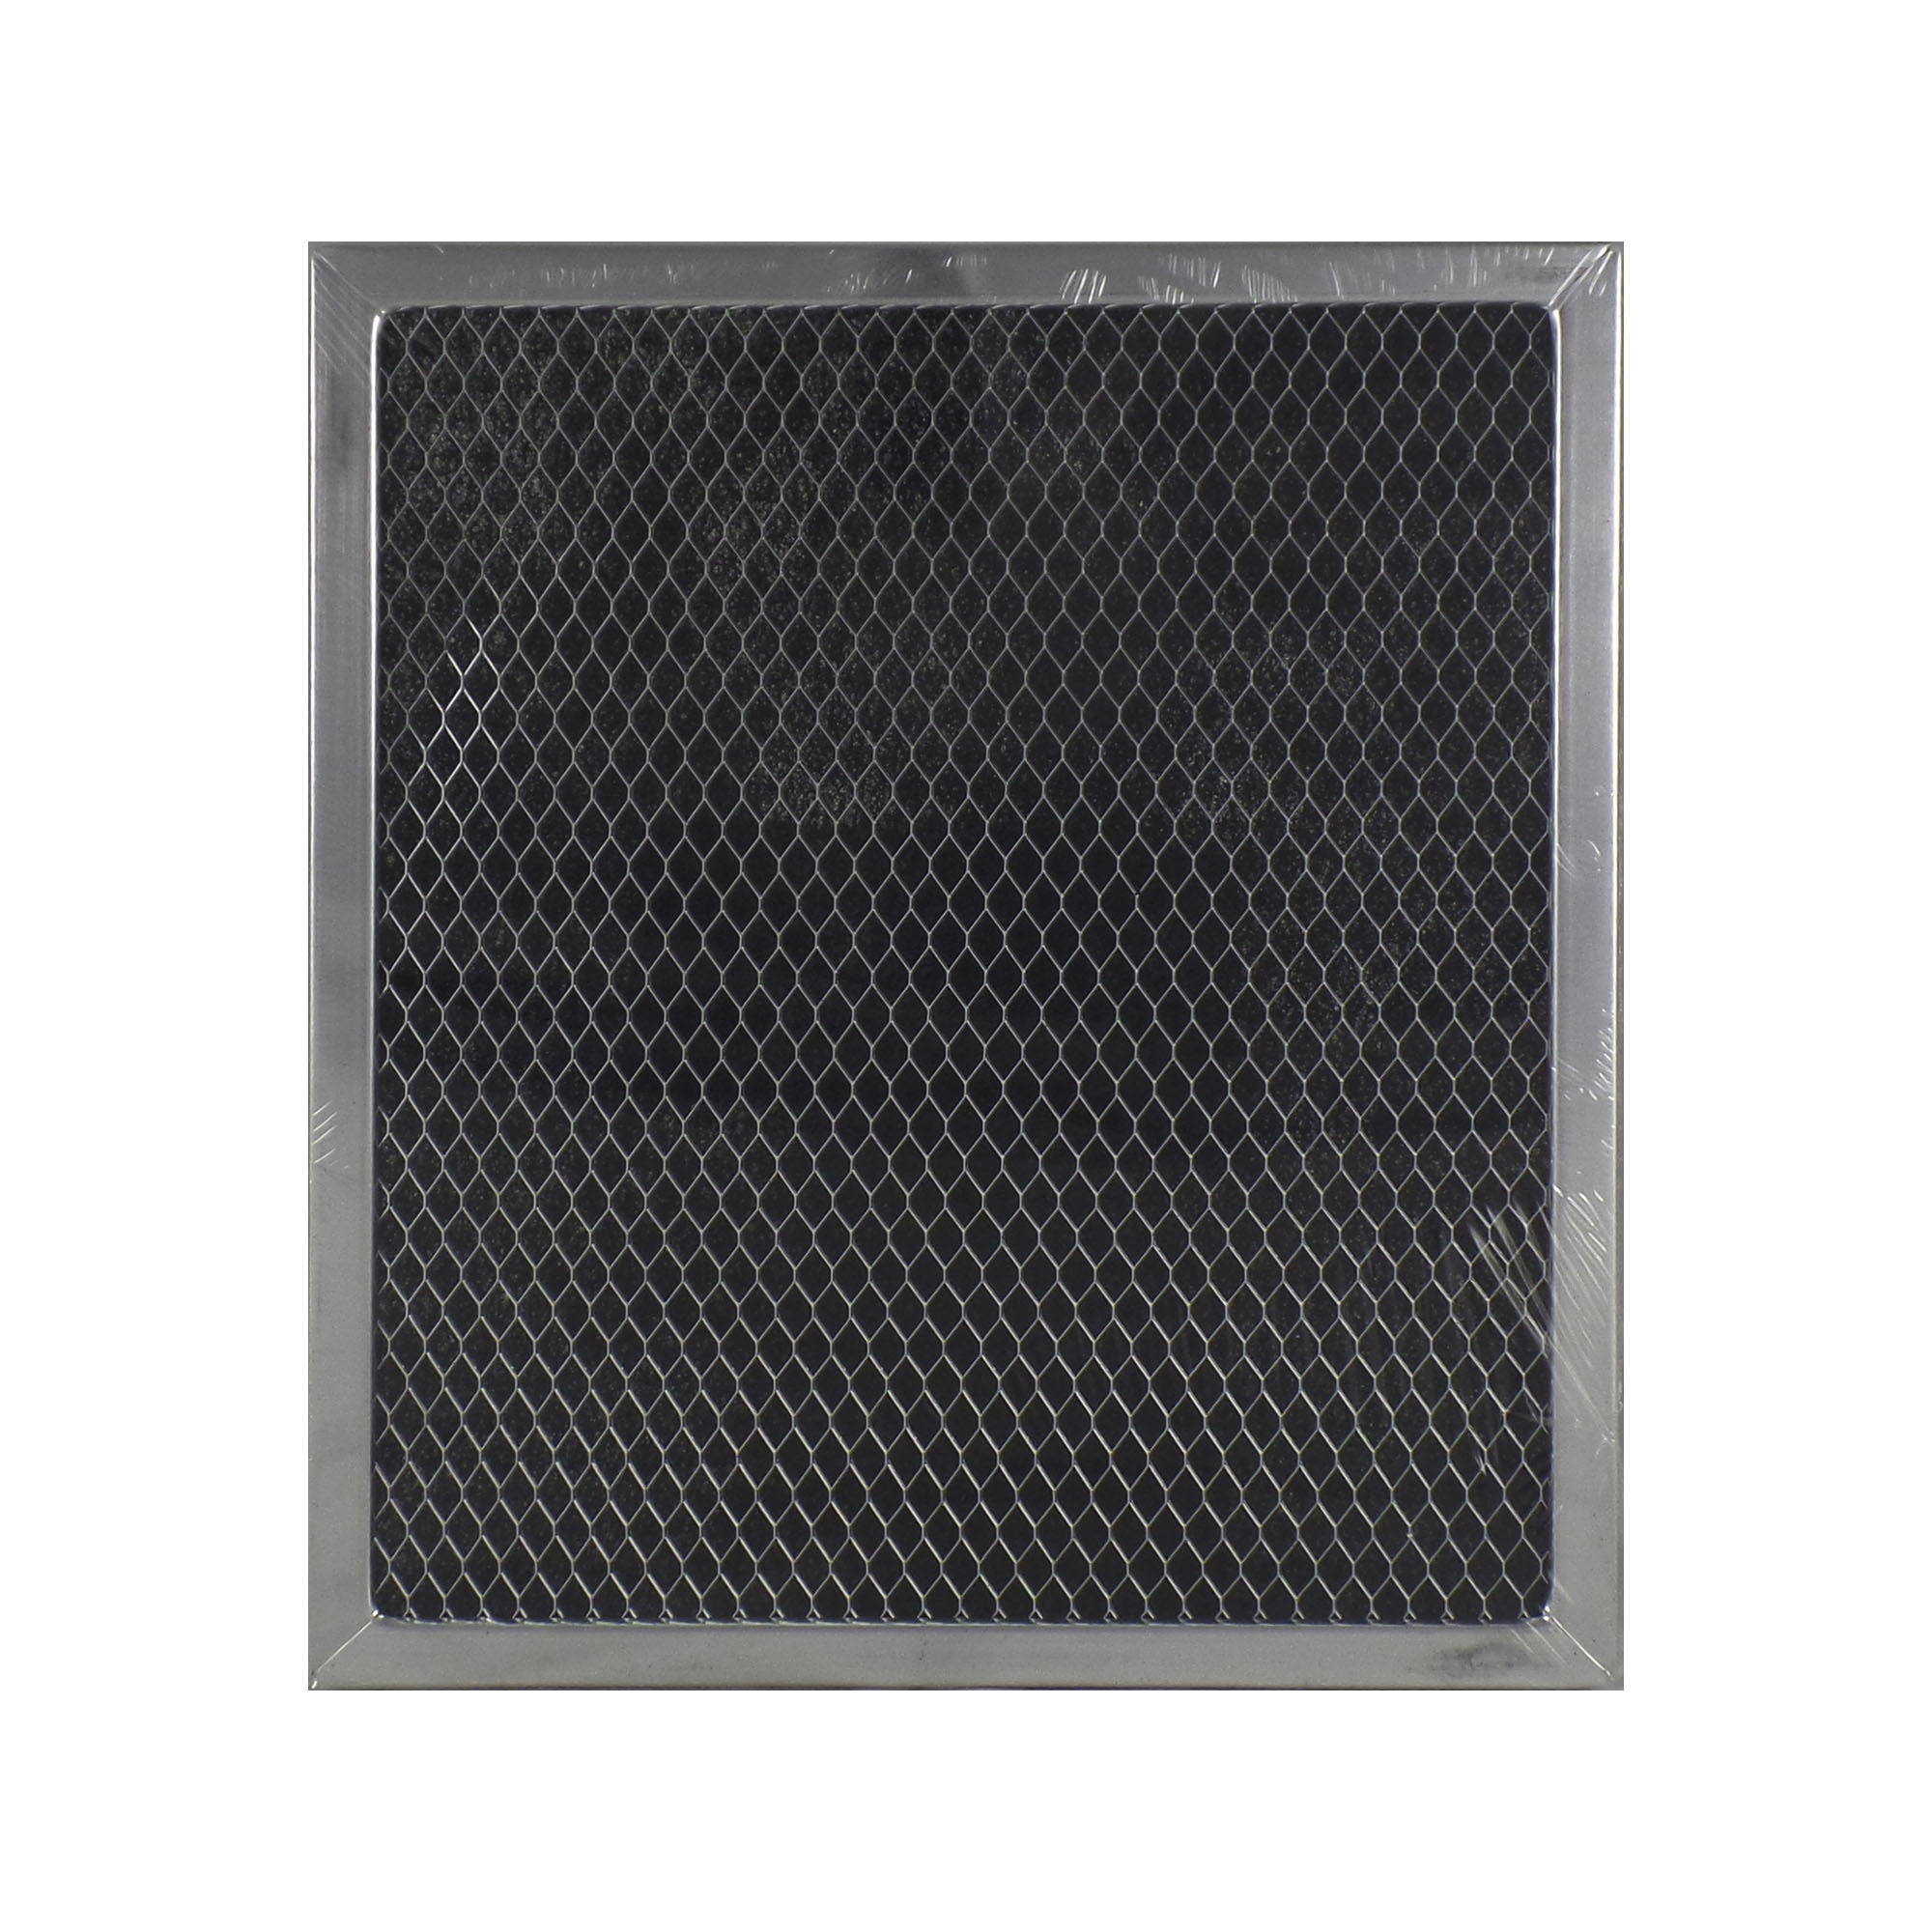 AirCare Charcoal Range Hood Filter AC1800